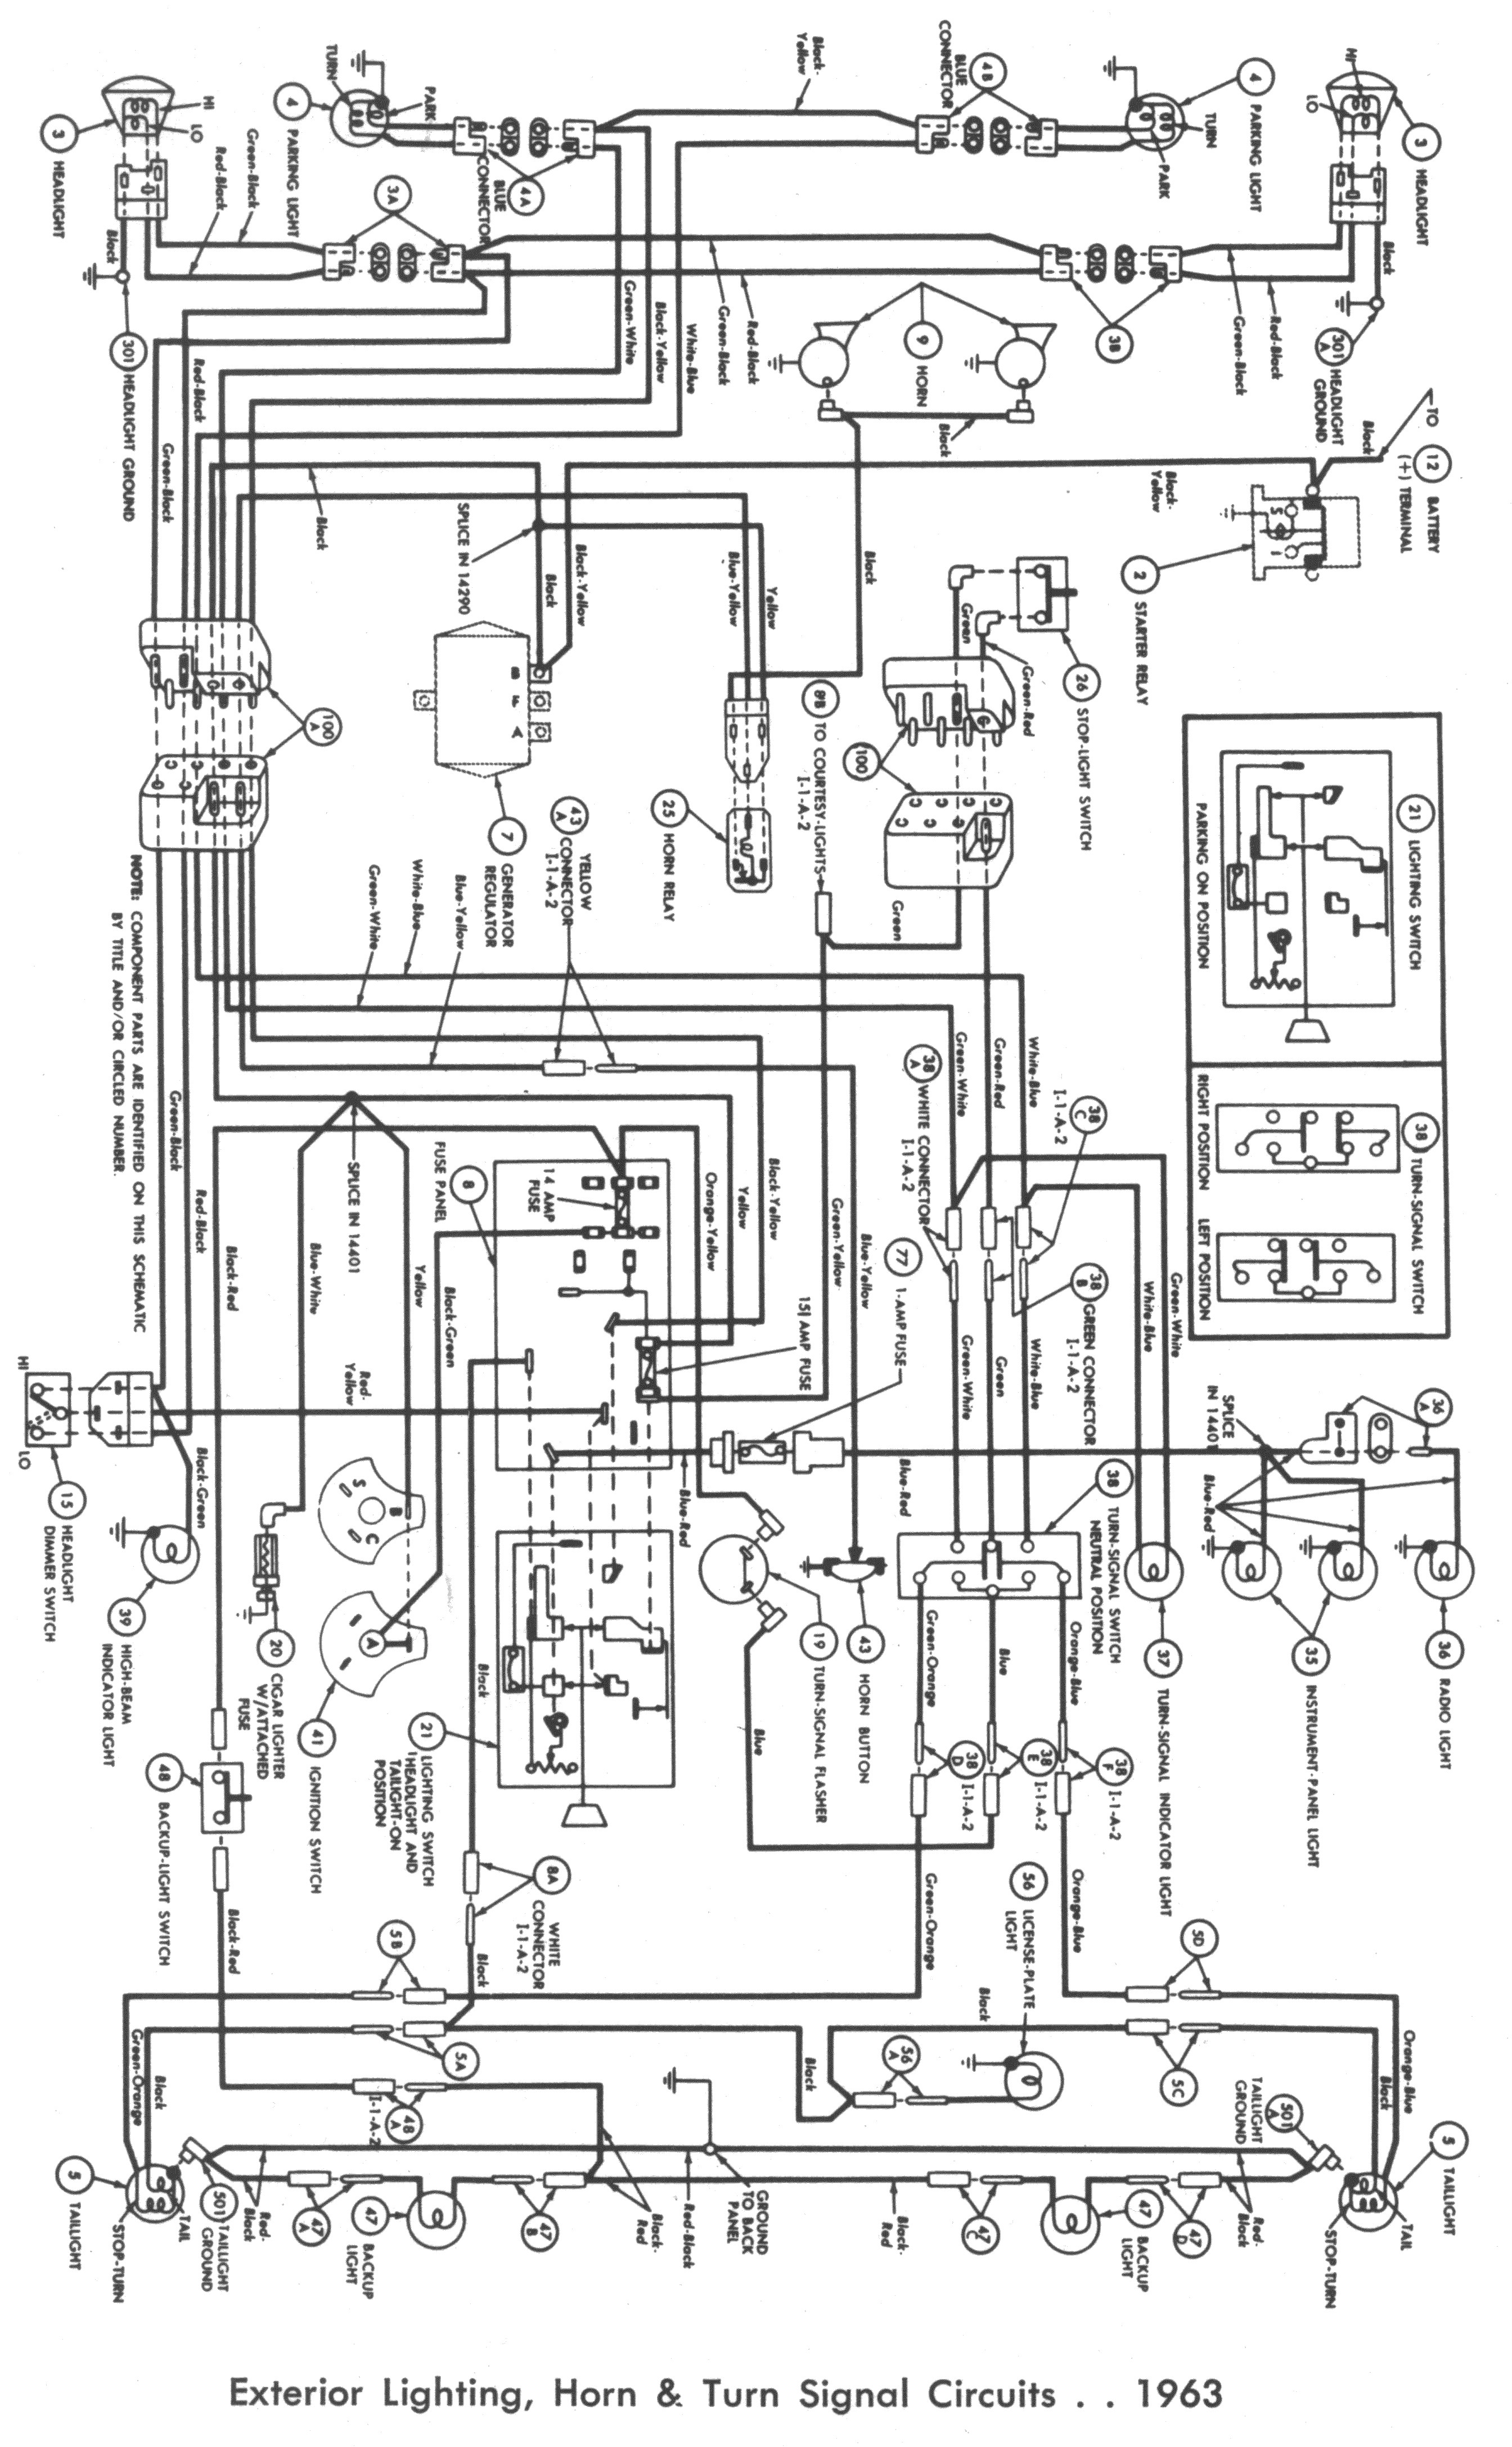 Wiring 61 62 144La falcon wiring diagrams ba falcon ignition wiring diagram at bayanpartner.co